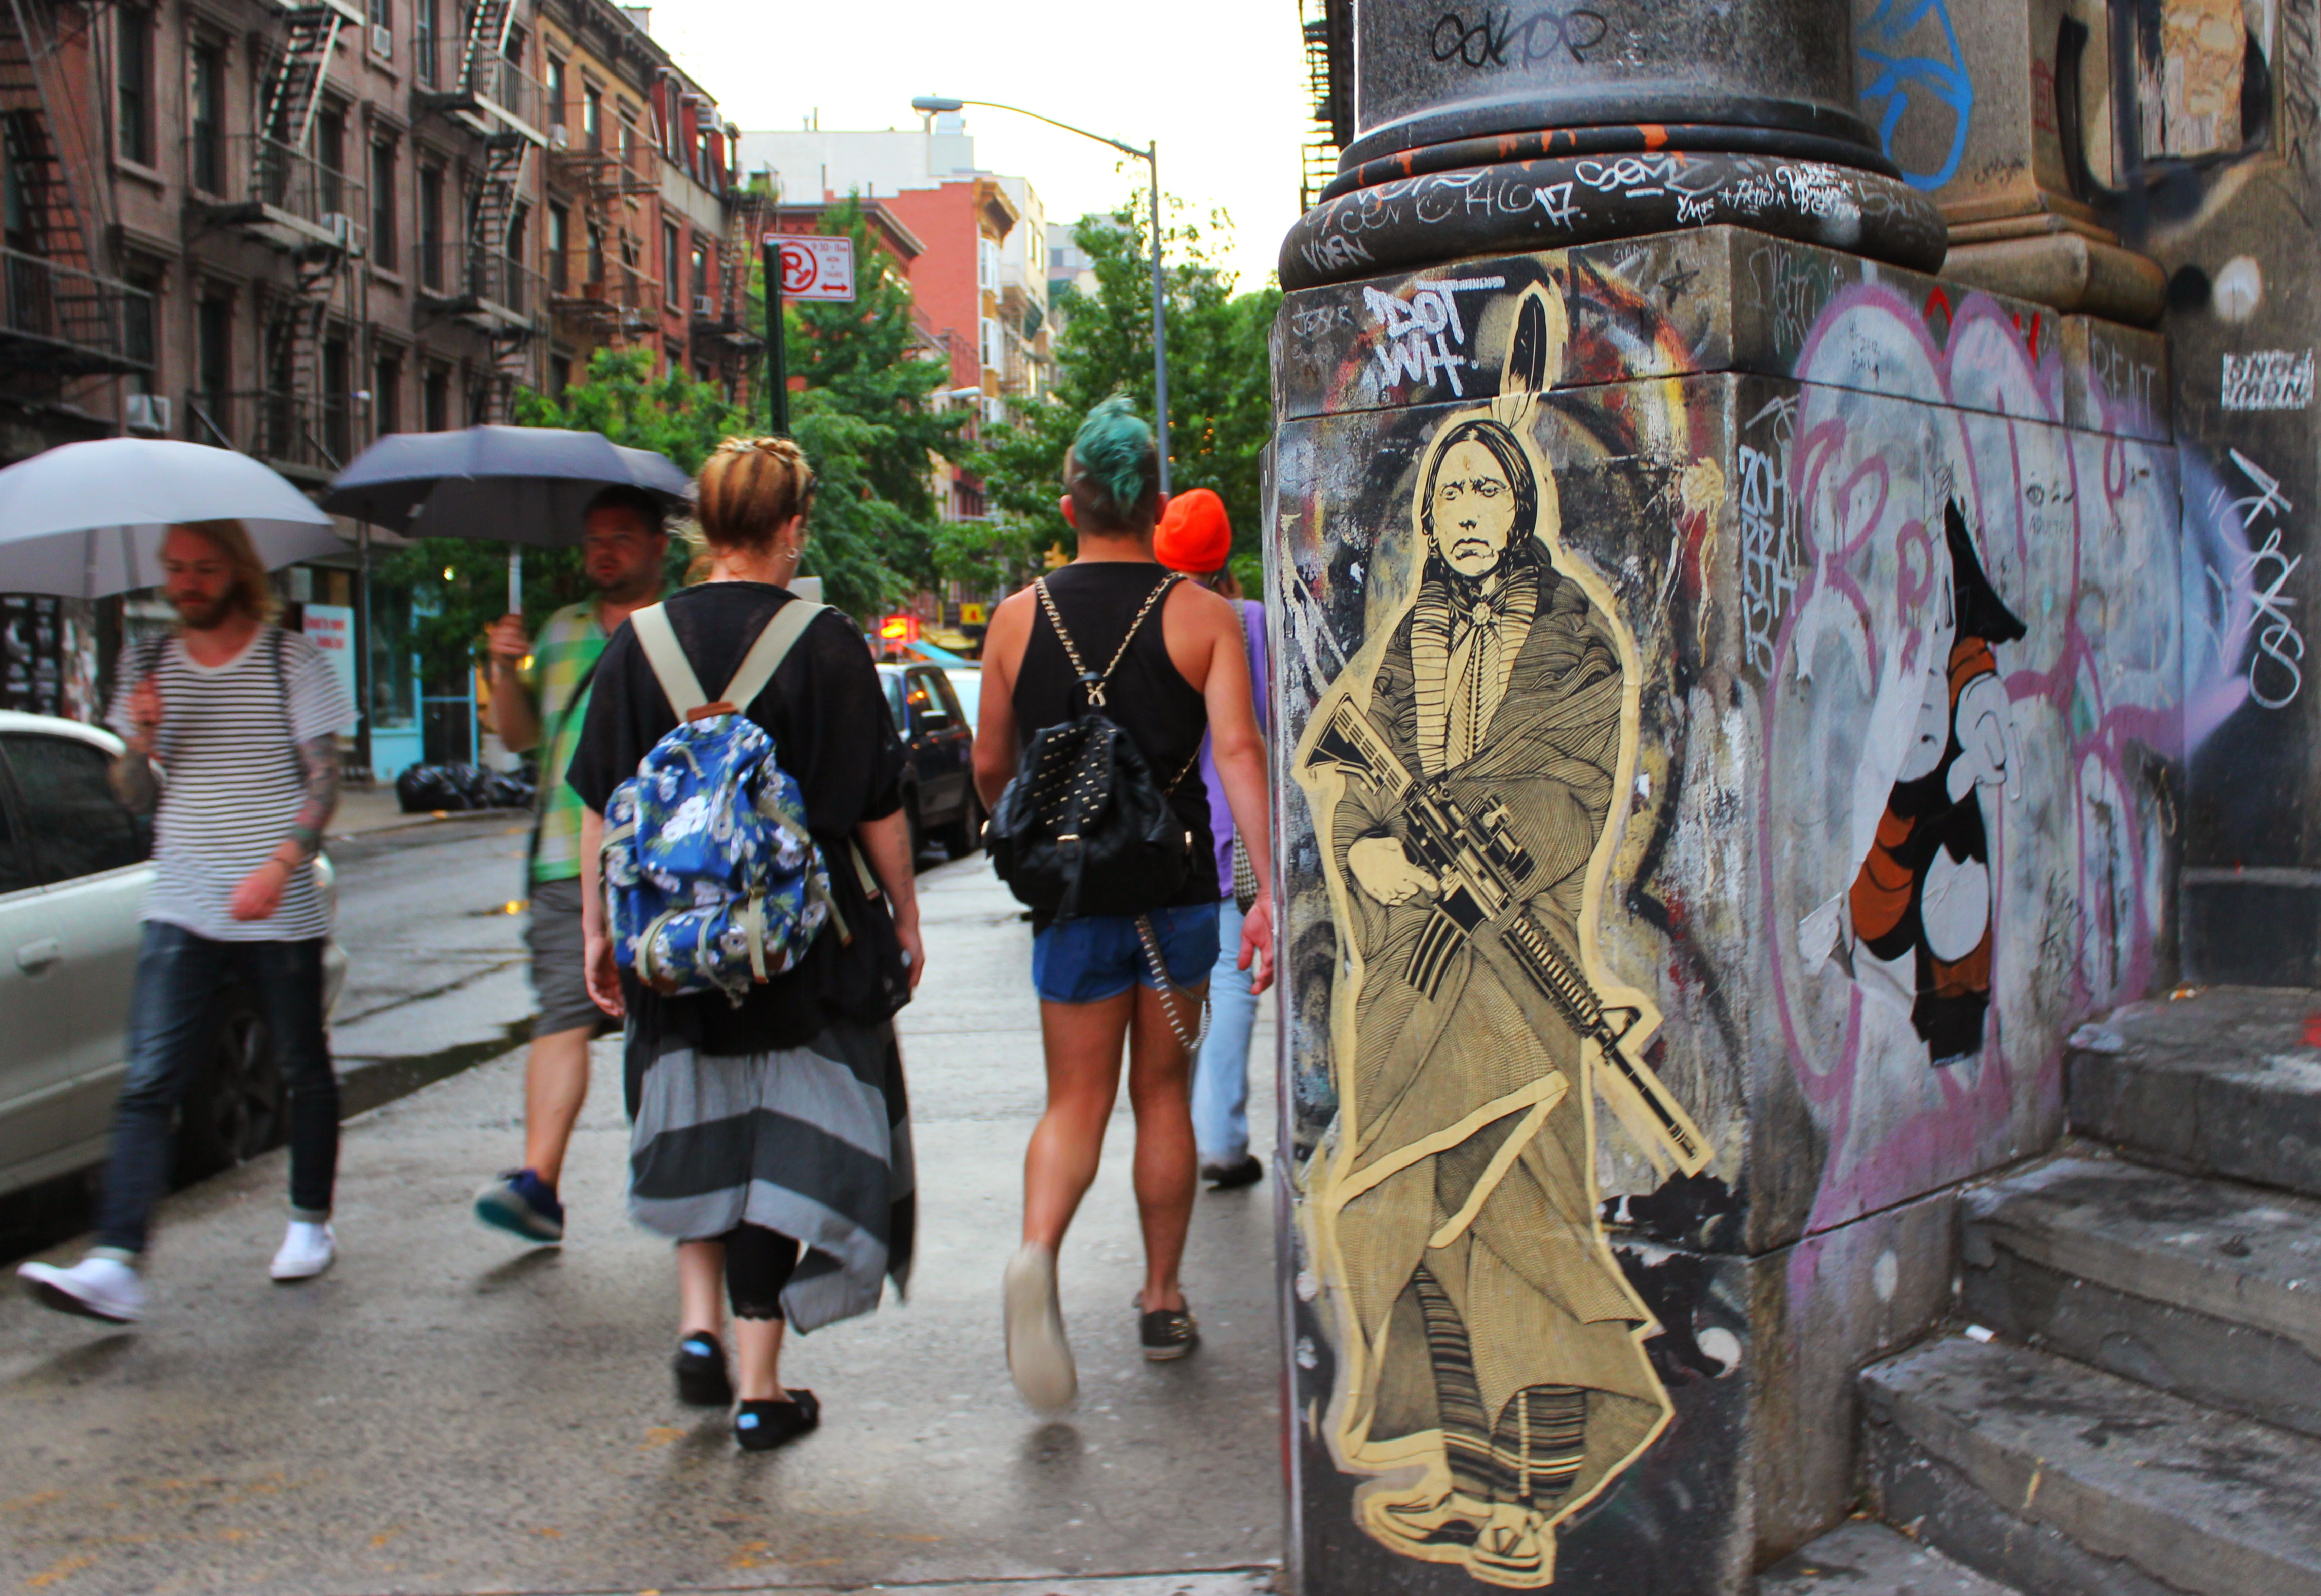 Beautiful wheat paste up of a native american on the public art gallery buildning on the